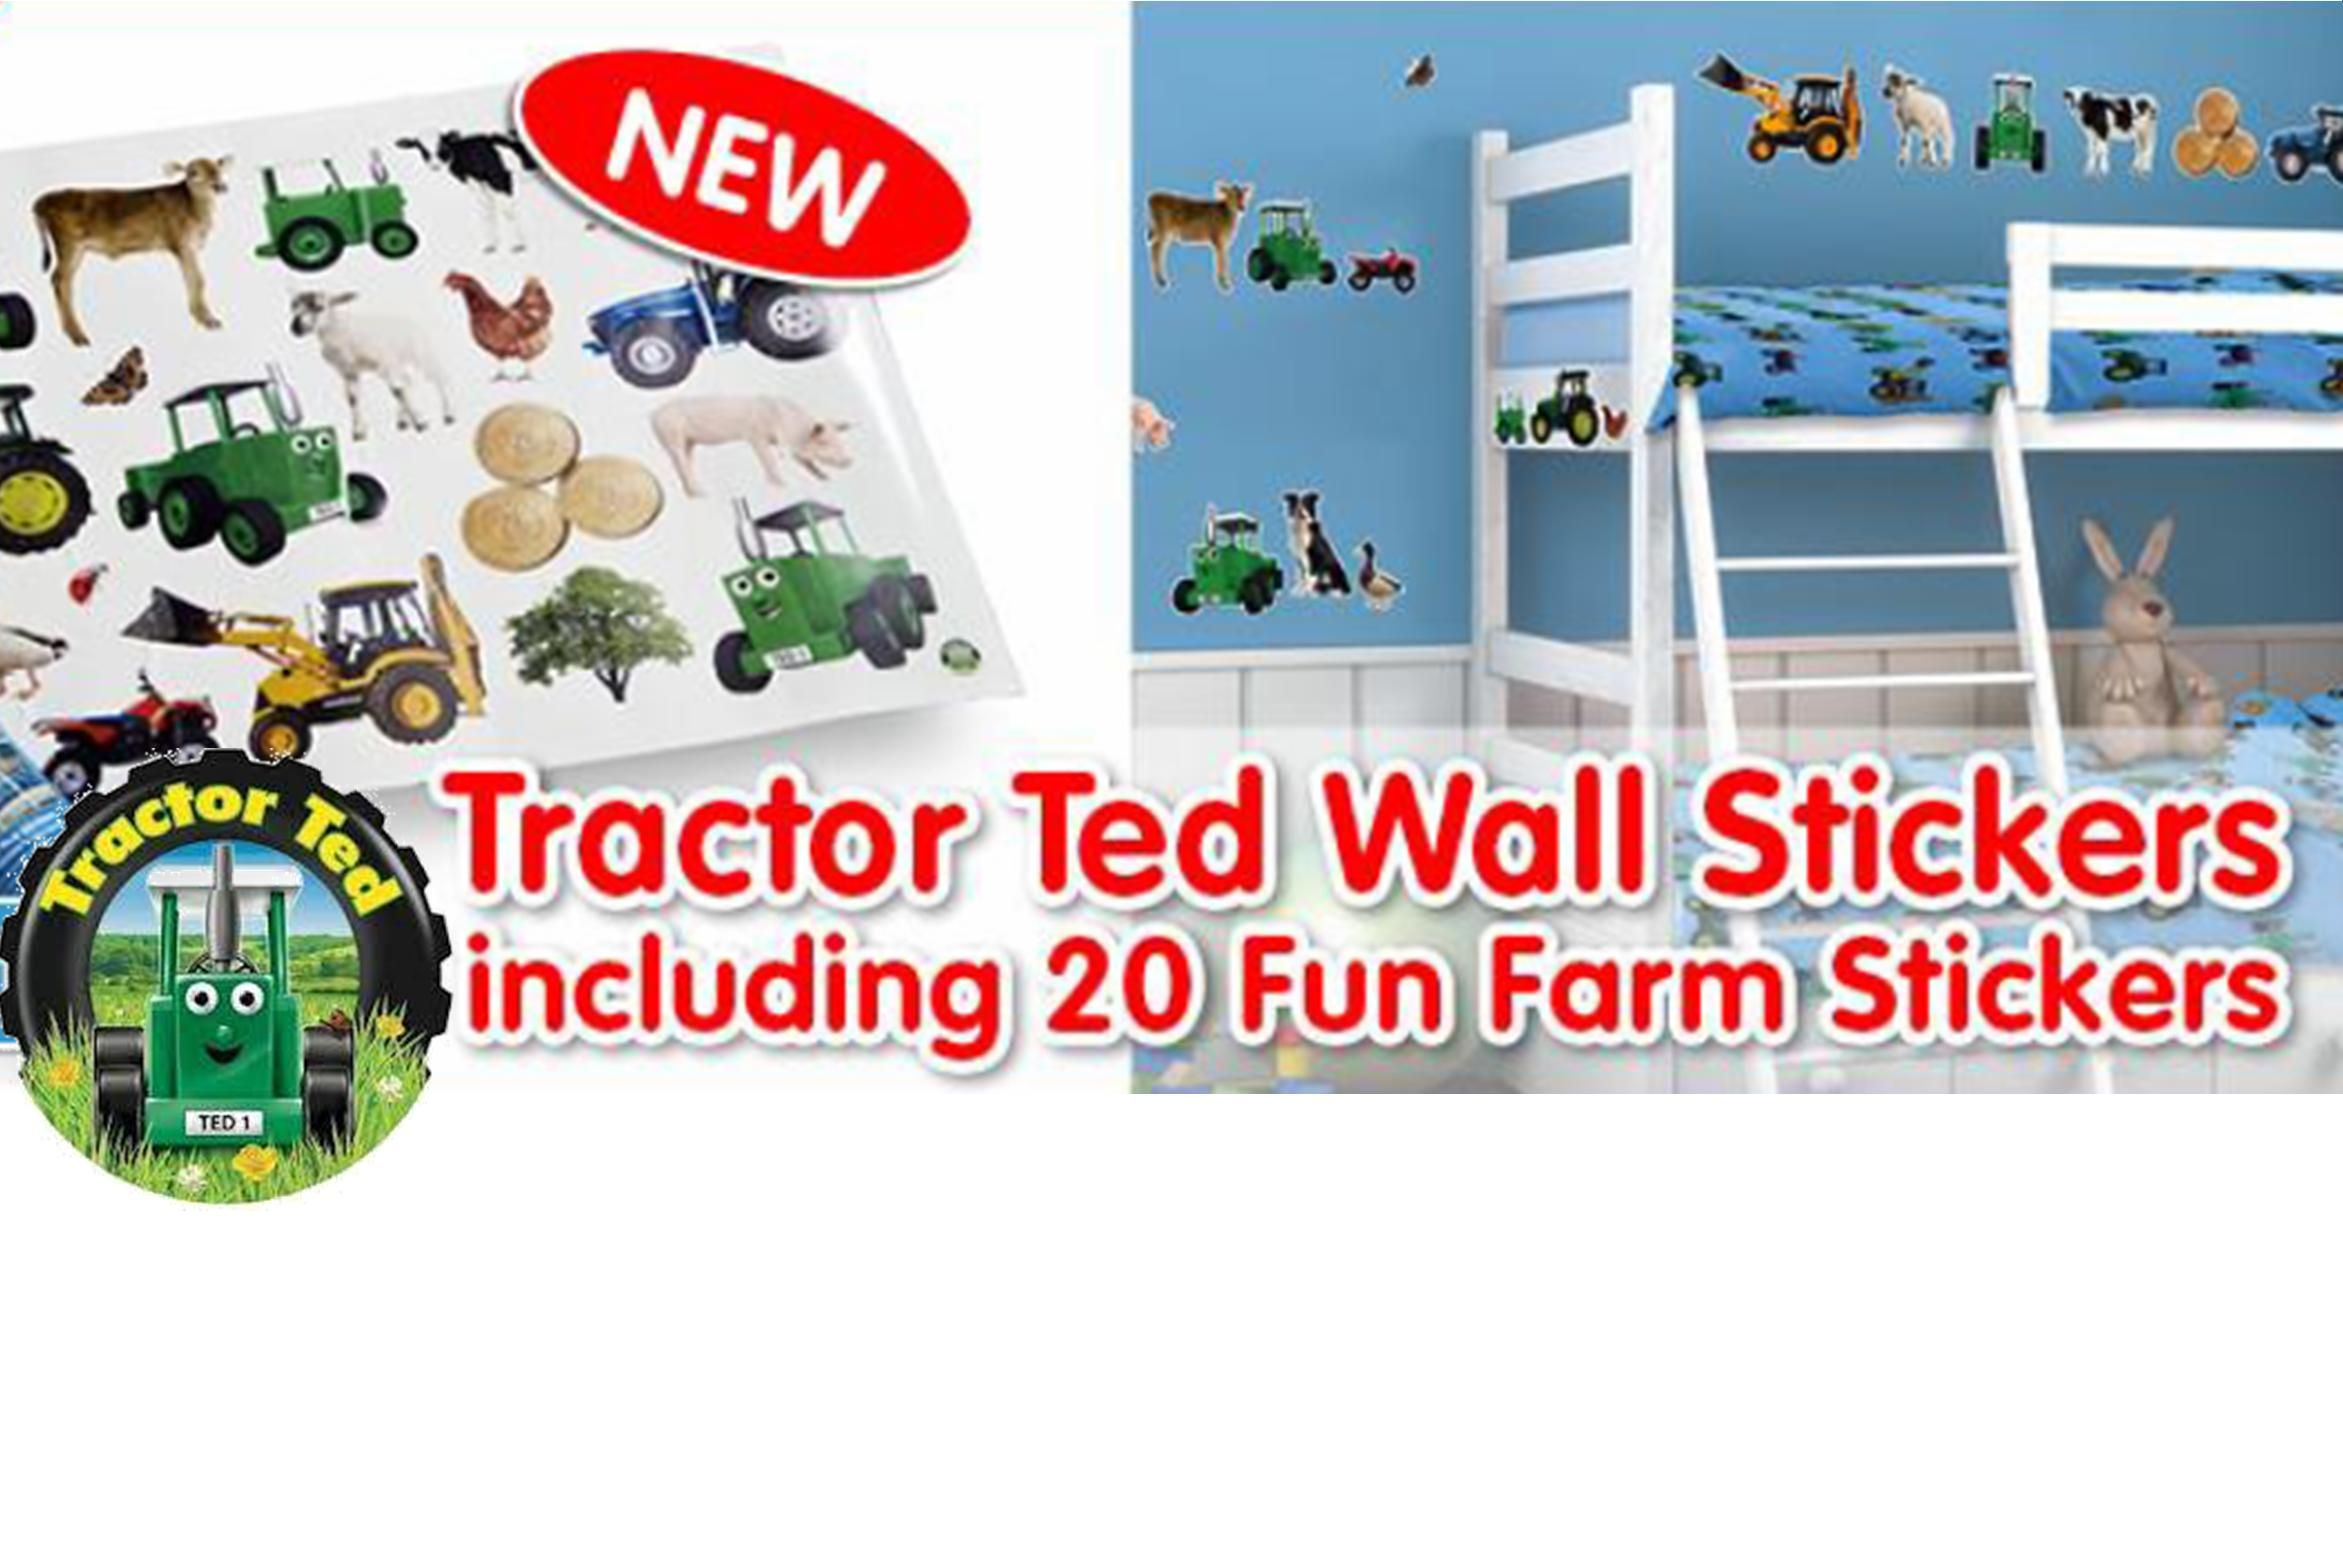 NEW Tractor Ted Wall Stickers http://www.tincknellcountrystore.co.uk/search.asp?search=tractor+ted&refpage=all